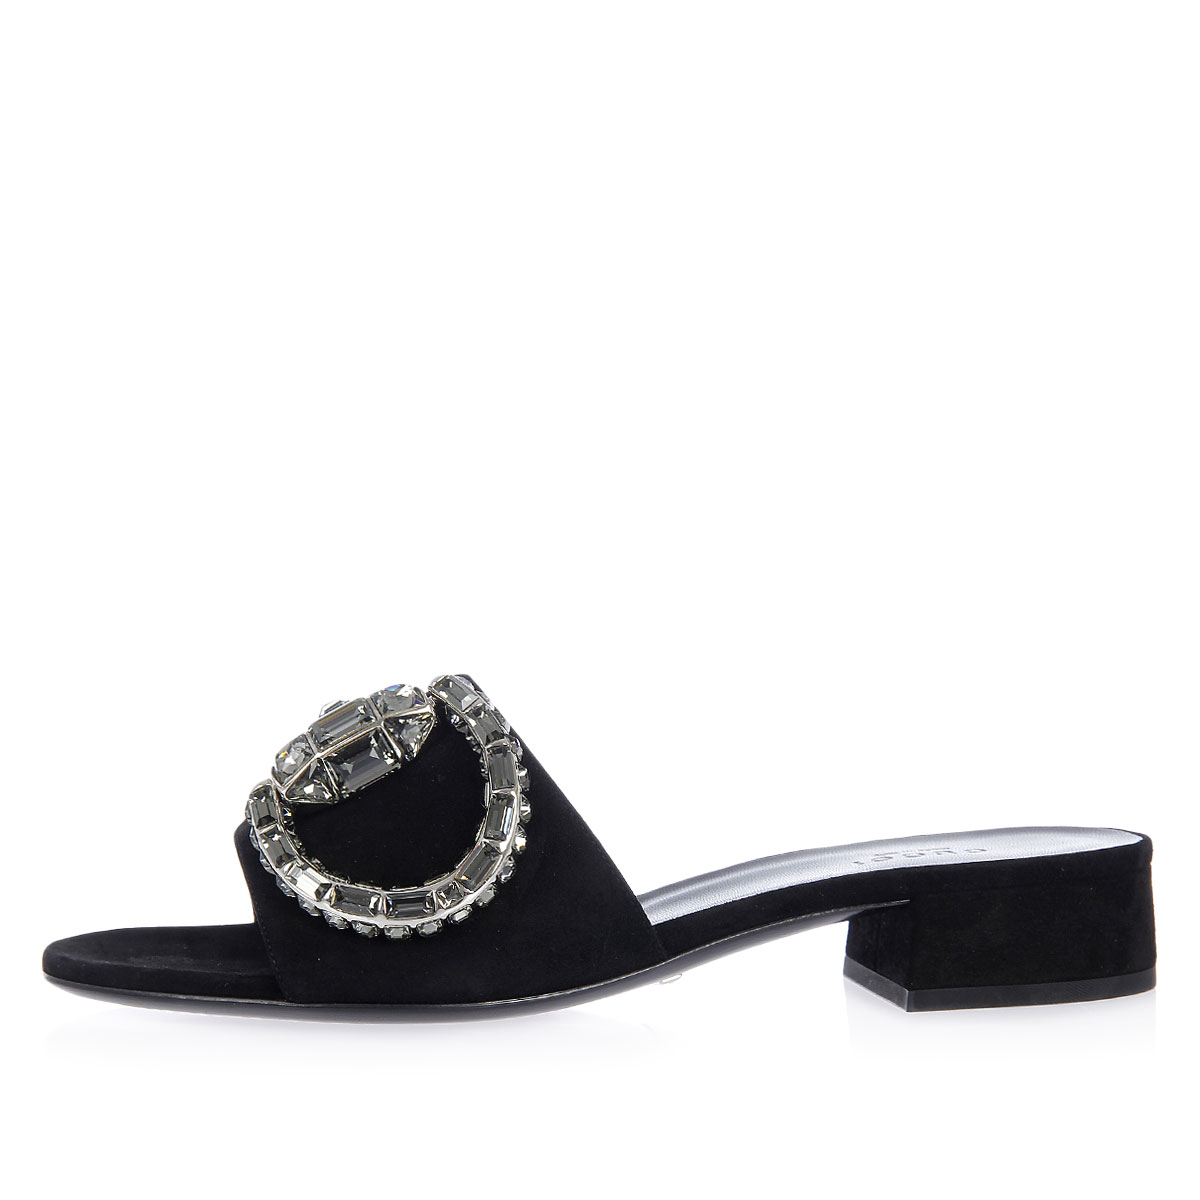 9a5c4741e2f Gucci Women Suede Sandals with Strass Heel 3 cm - Glamood Outlet